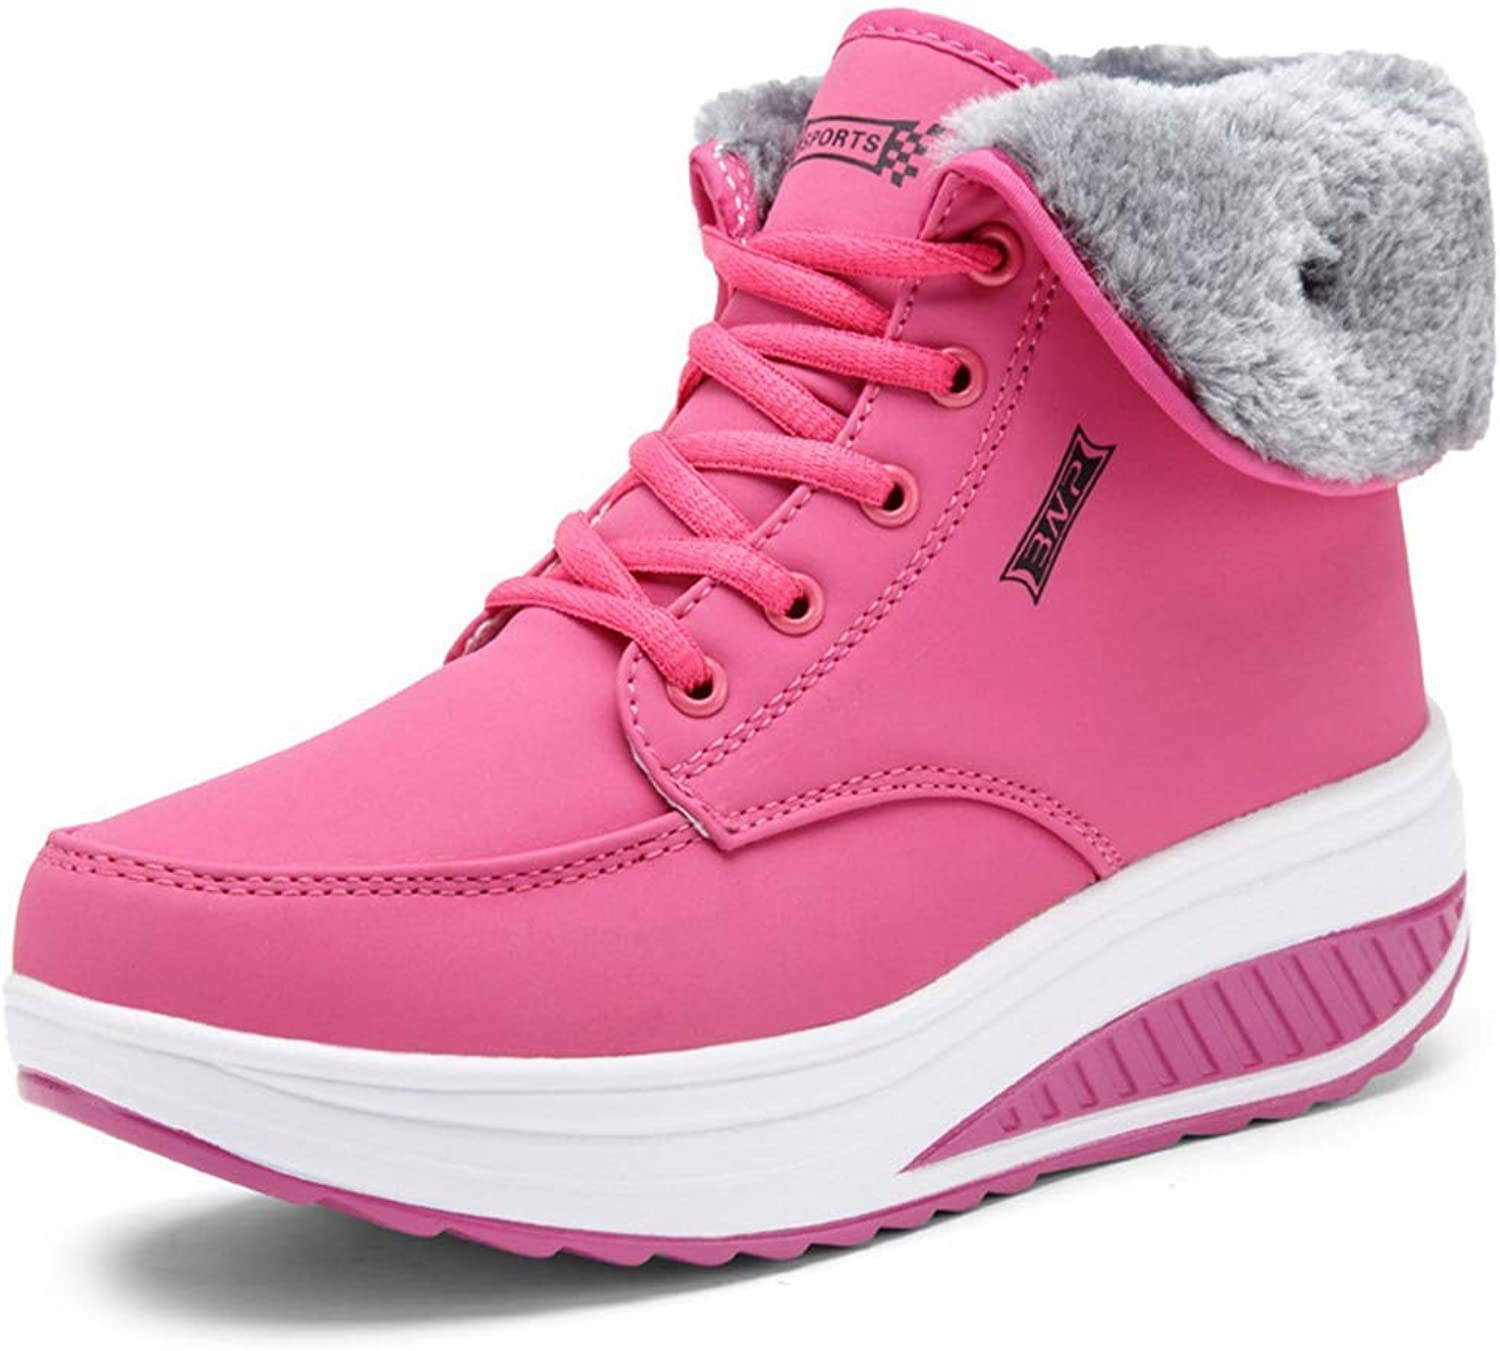 BMTH Women Winter Female shoes Wedges Platform Snow Boots Thermal Cotton-Padded shoes Flat Ankle Boots